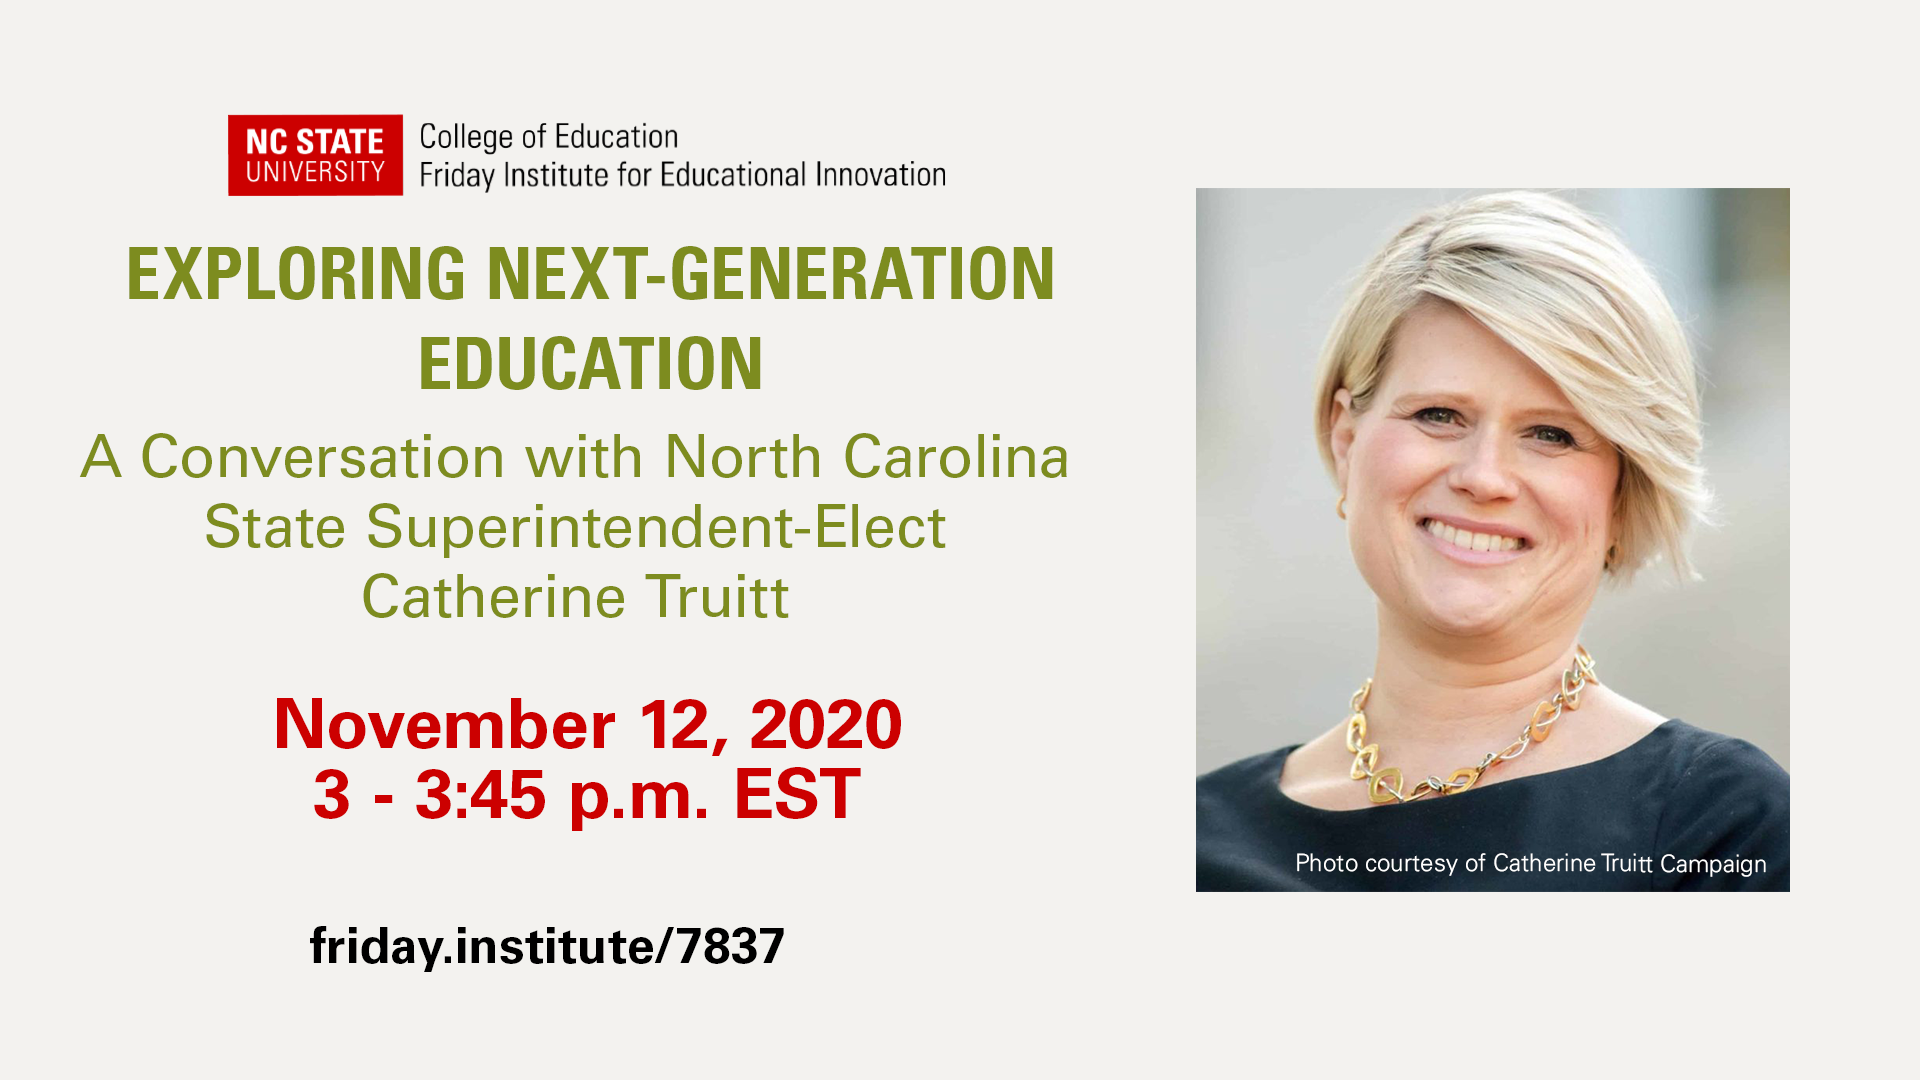 Exploring Next-Generation Education: A Conversation with North Carolina State Superintendent-Elect Catherine Truitt